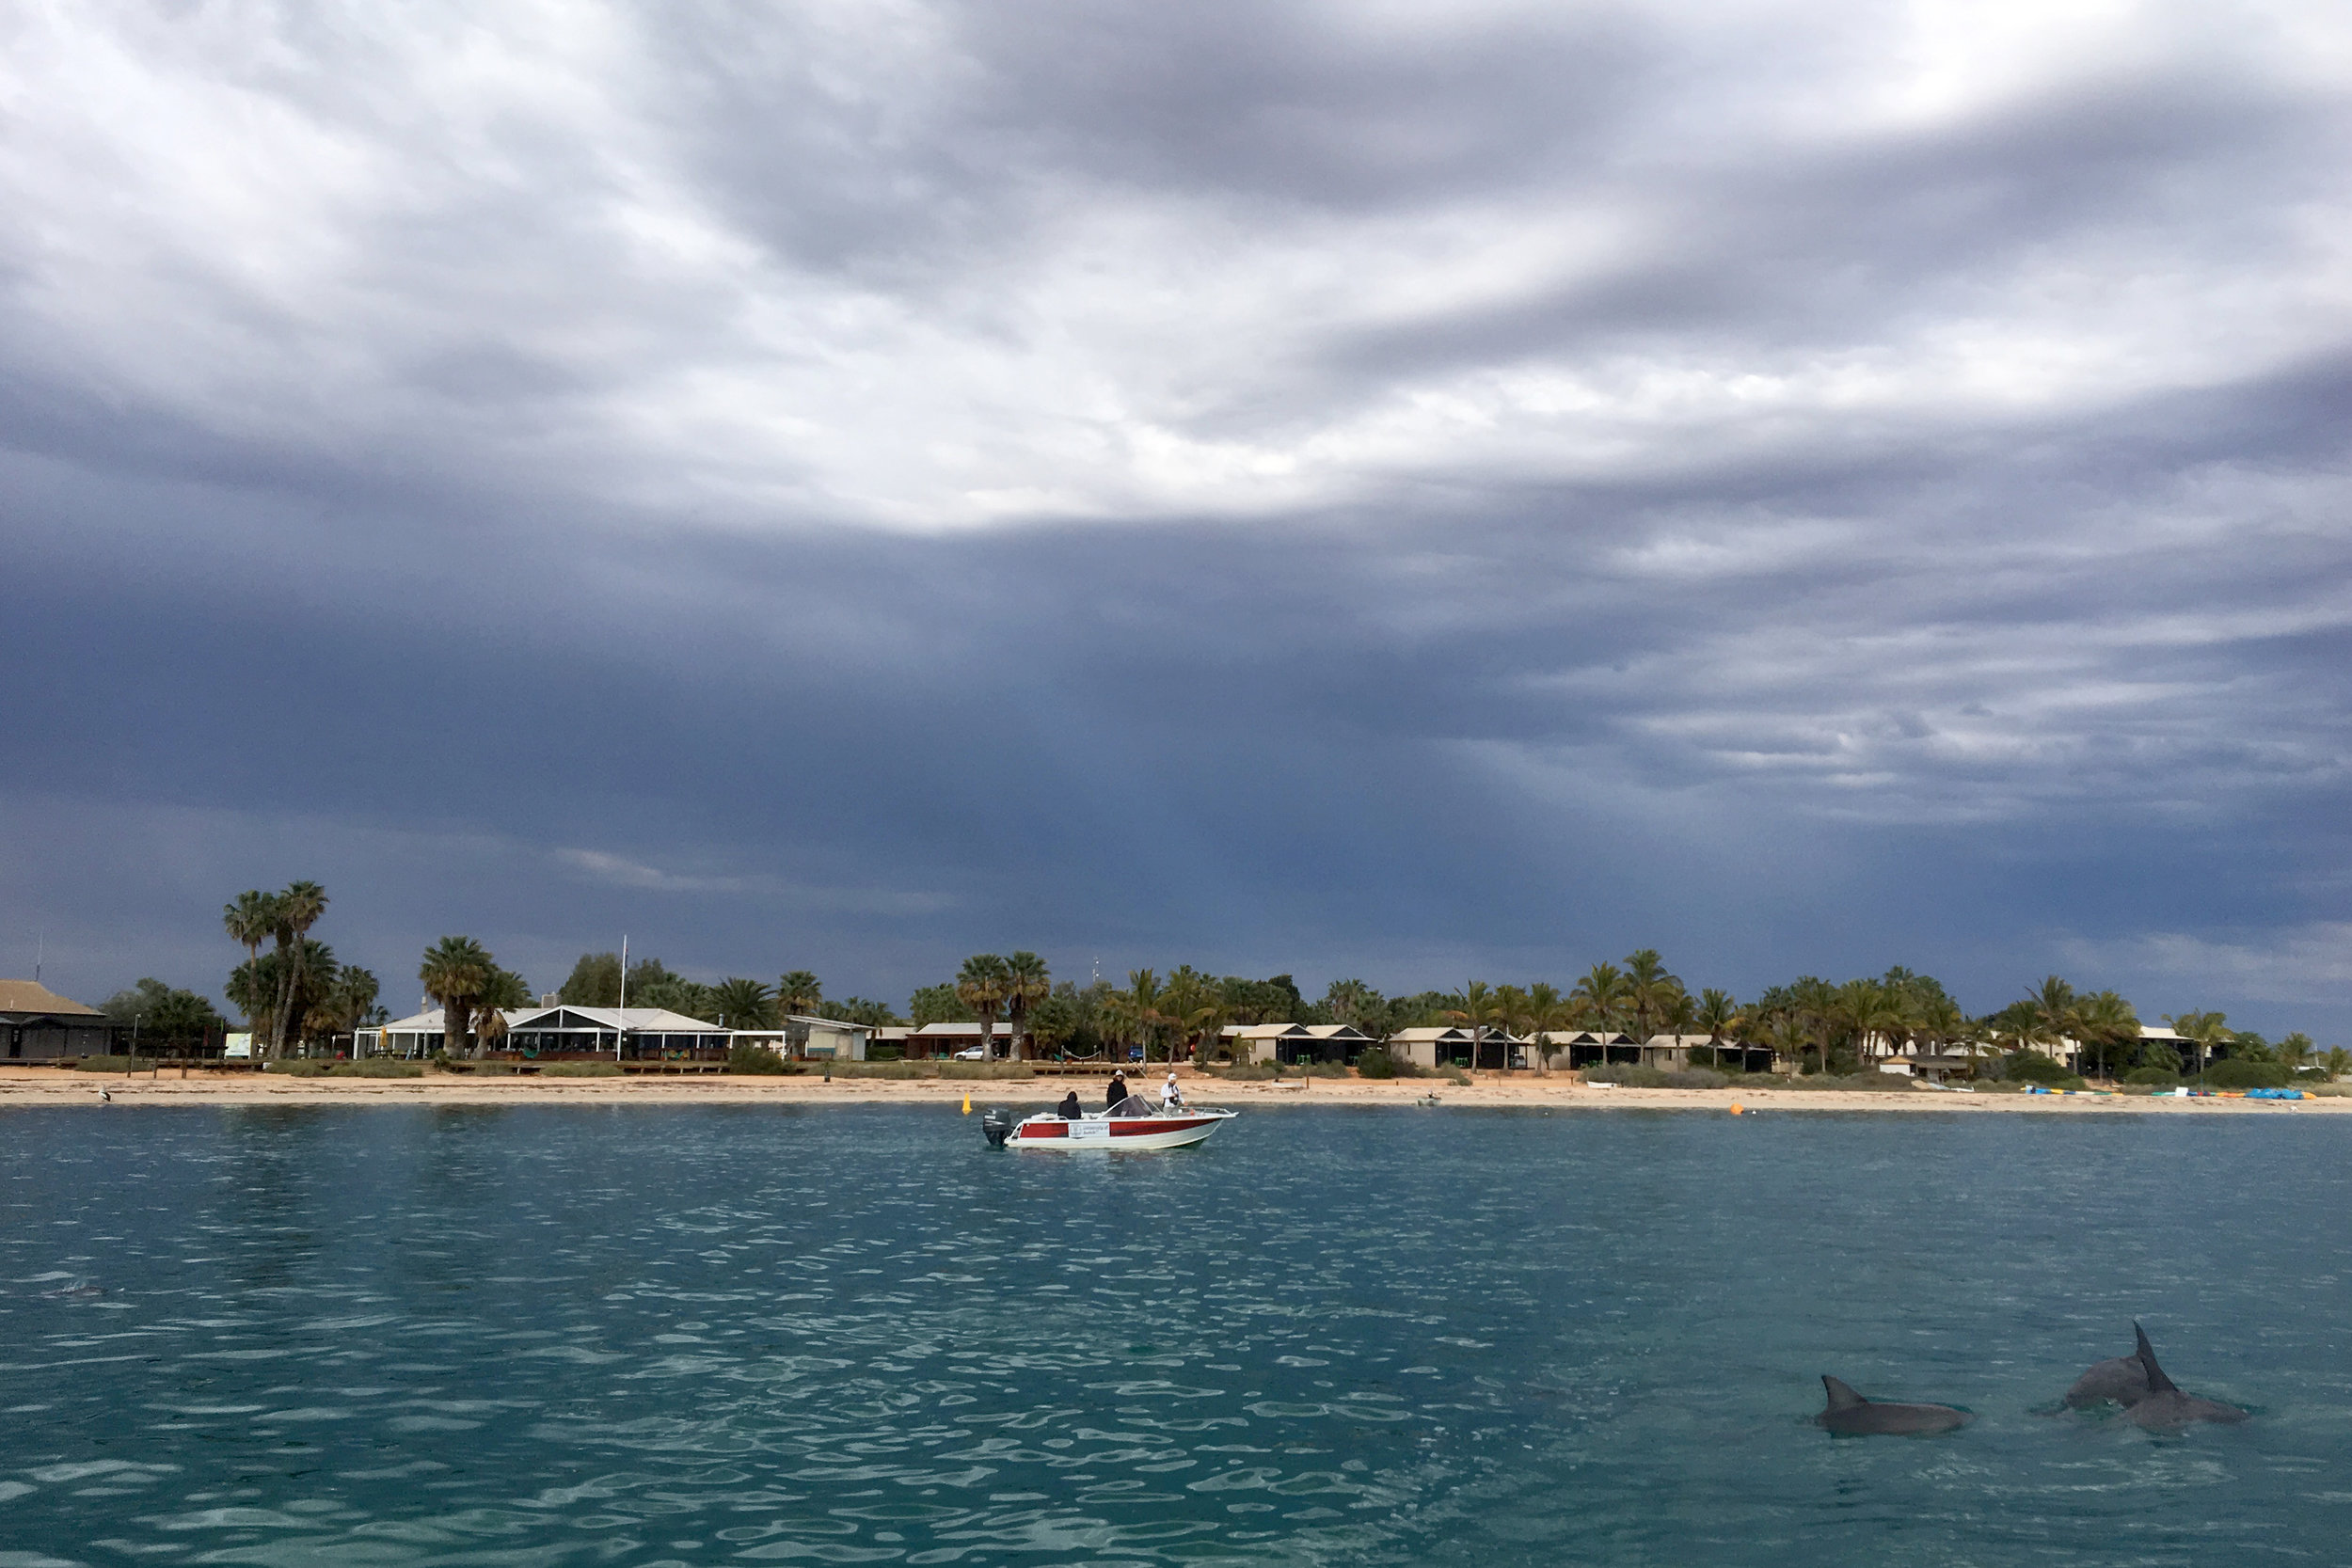 Our team leaving  Monkey Mia for a day of dolphin watching on Shark Bay  © Simon Allen